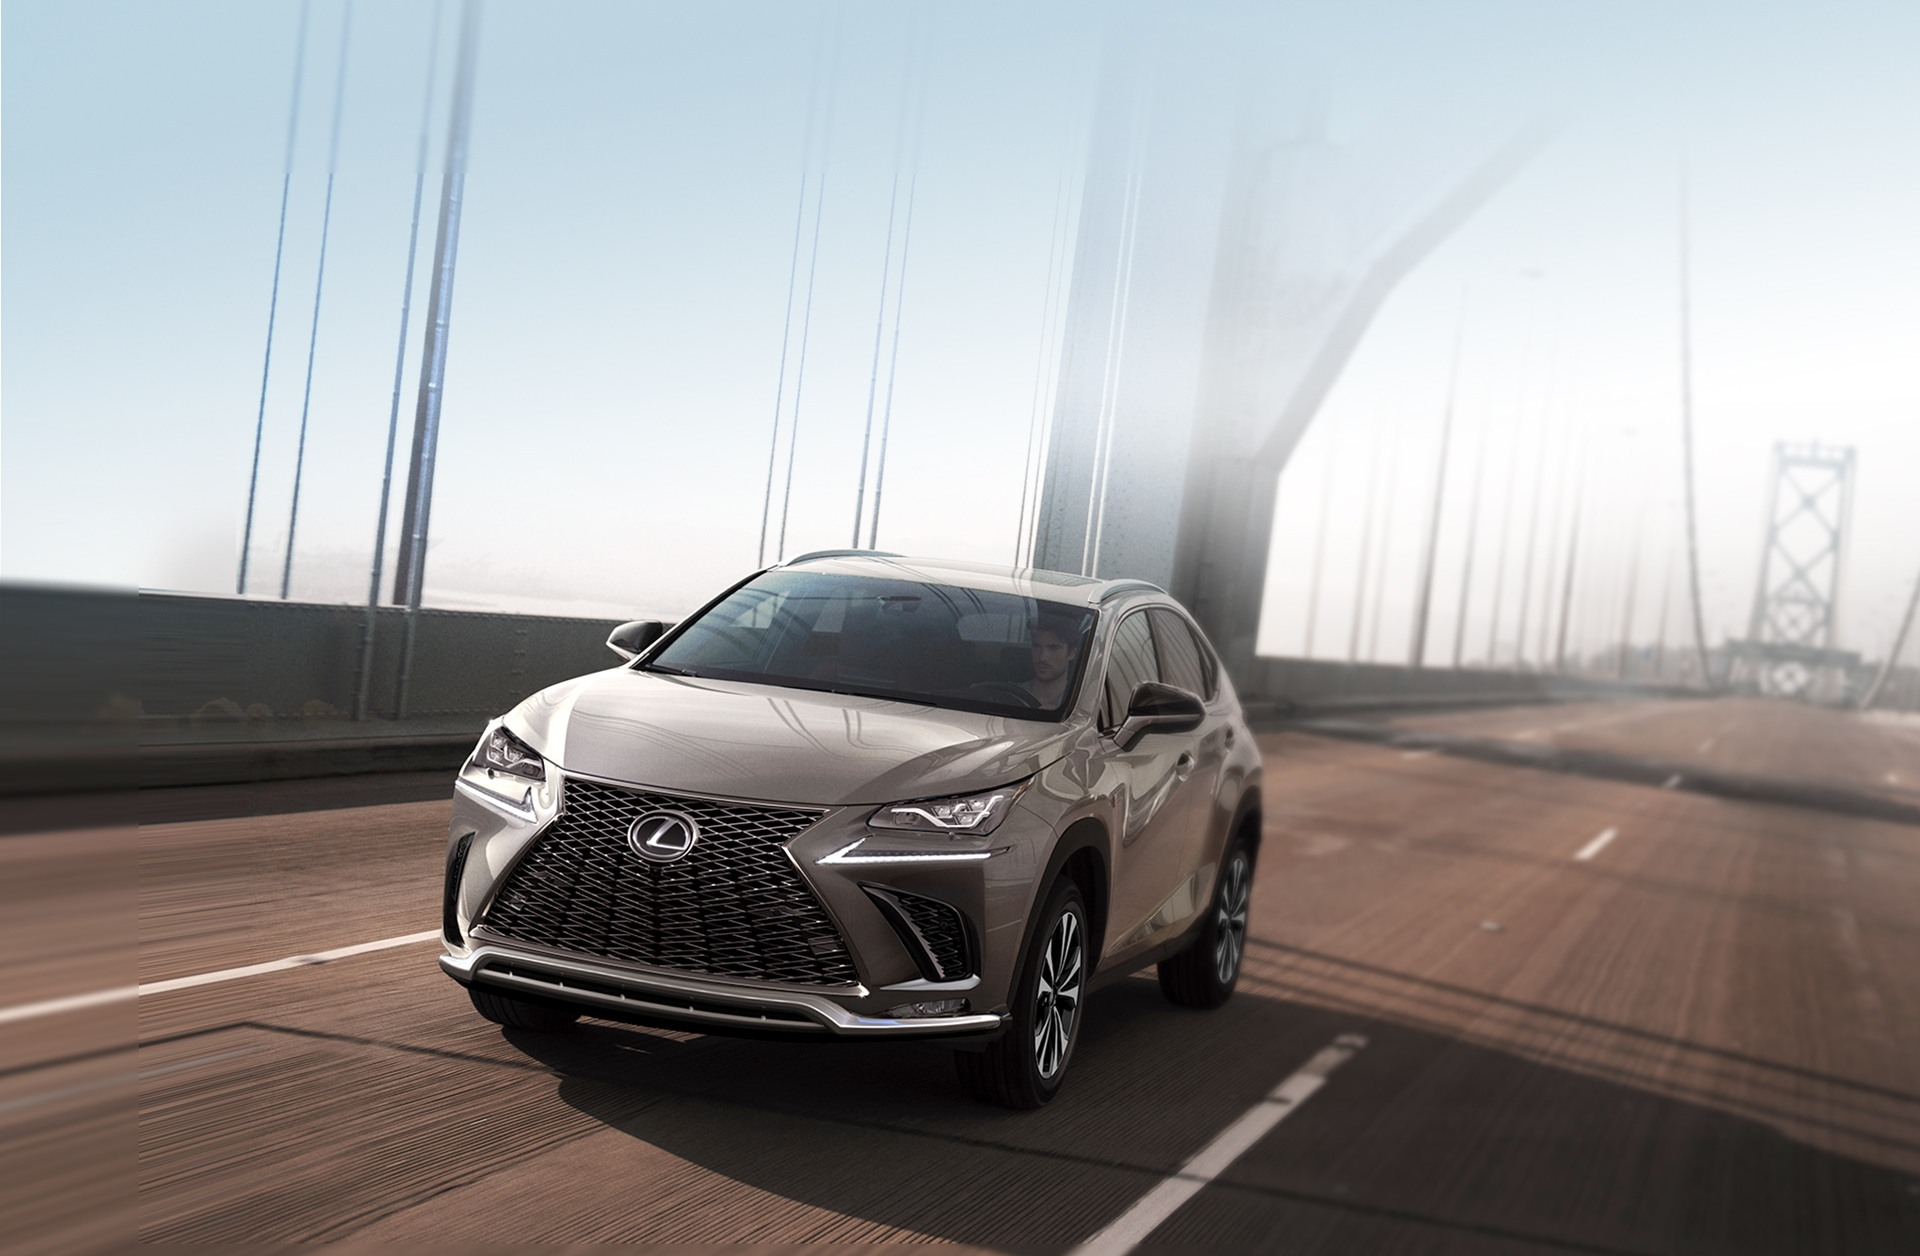 2019 Lexus NX_Turbocharged